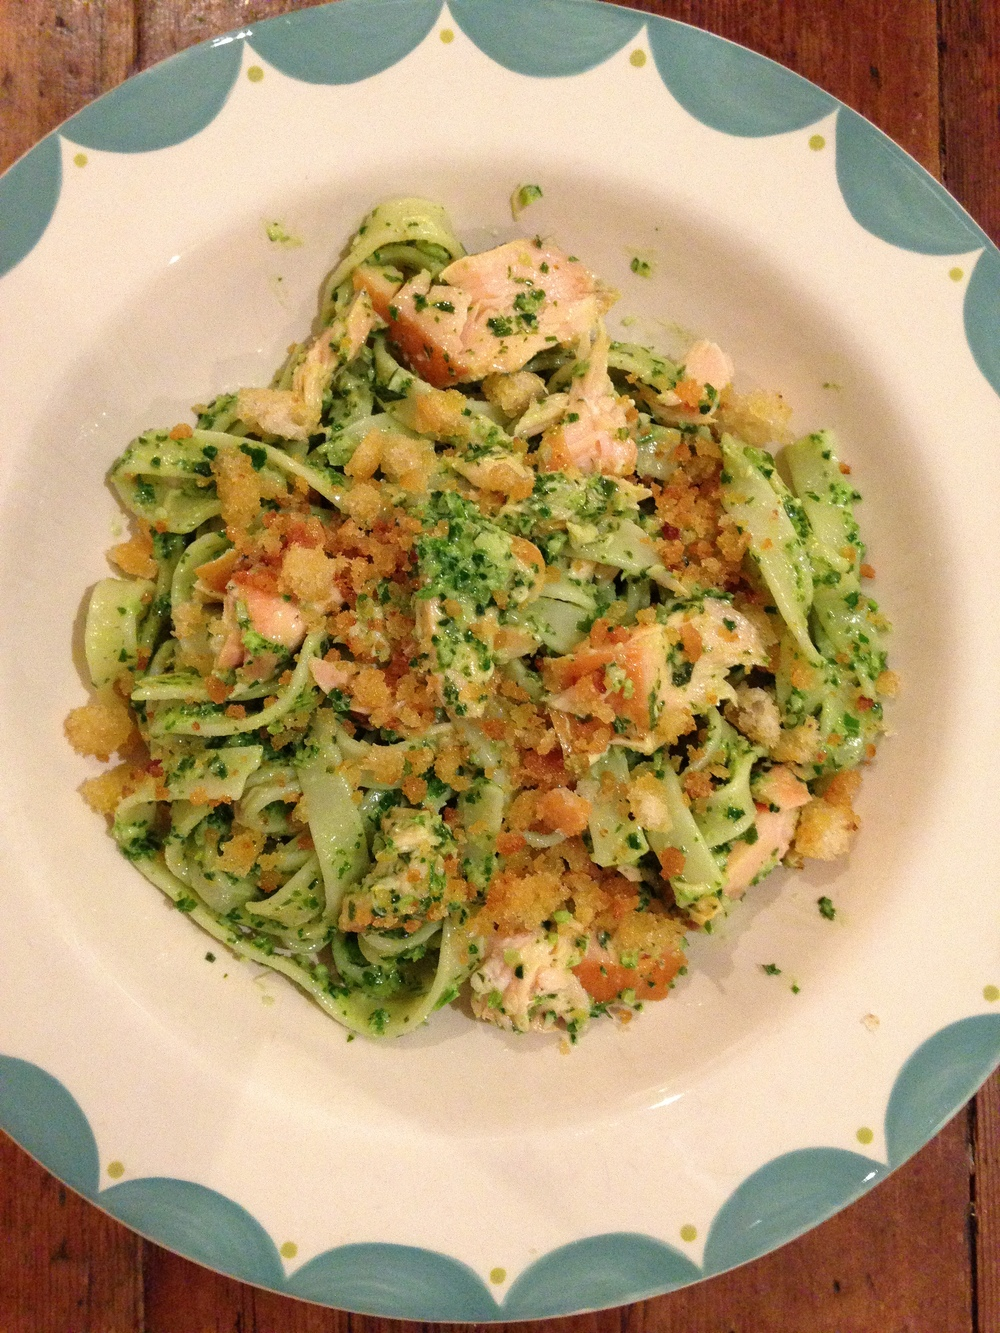 Pasta with kale pesto and hot smoked salmon